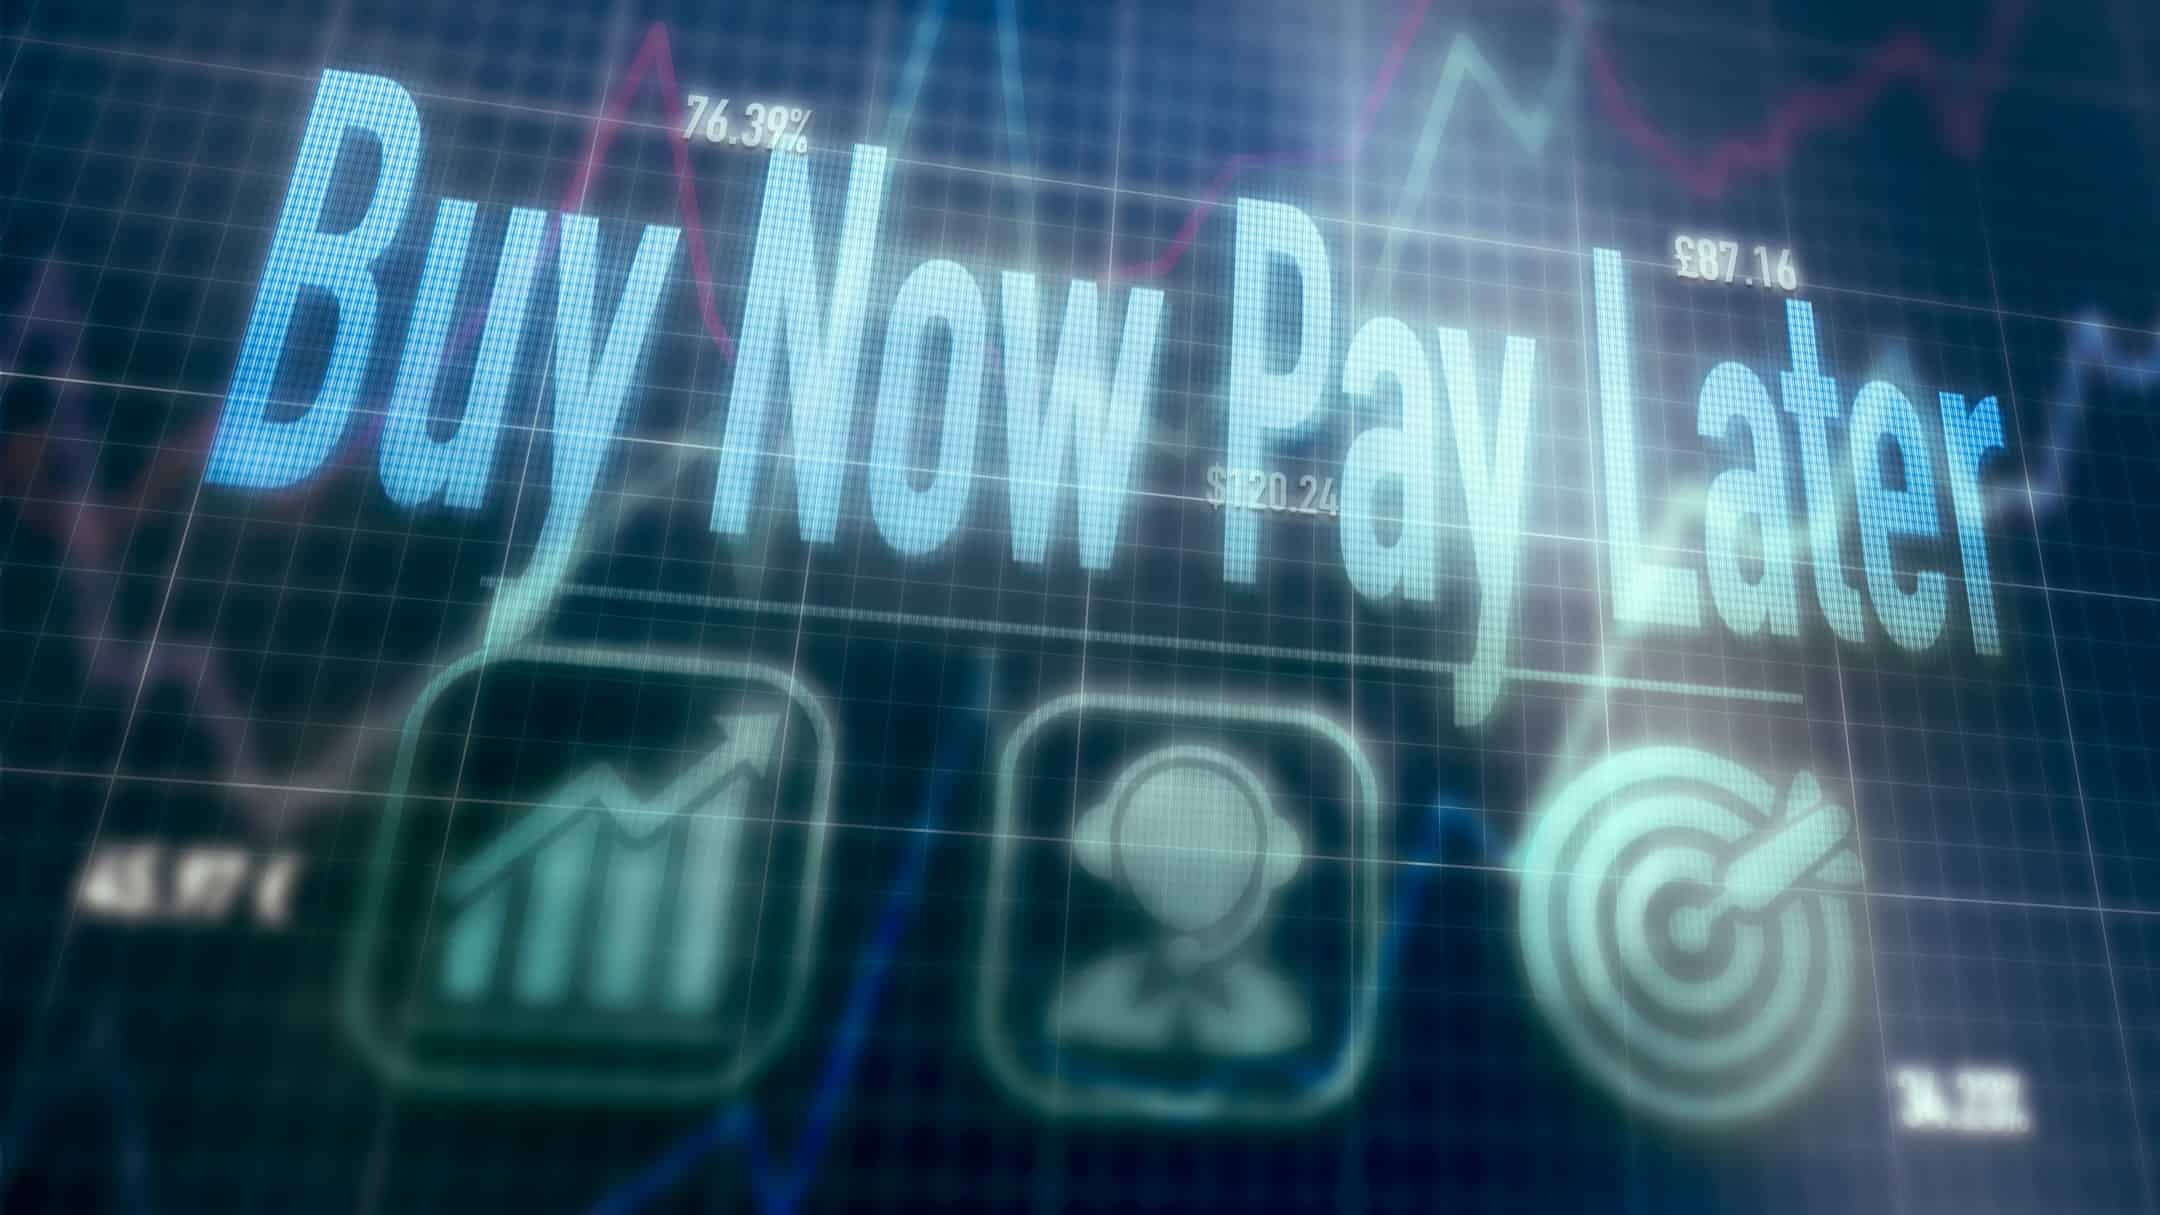 the words buy now pay later on digital screen, afterpay share price